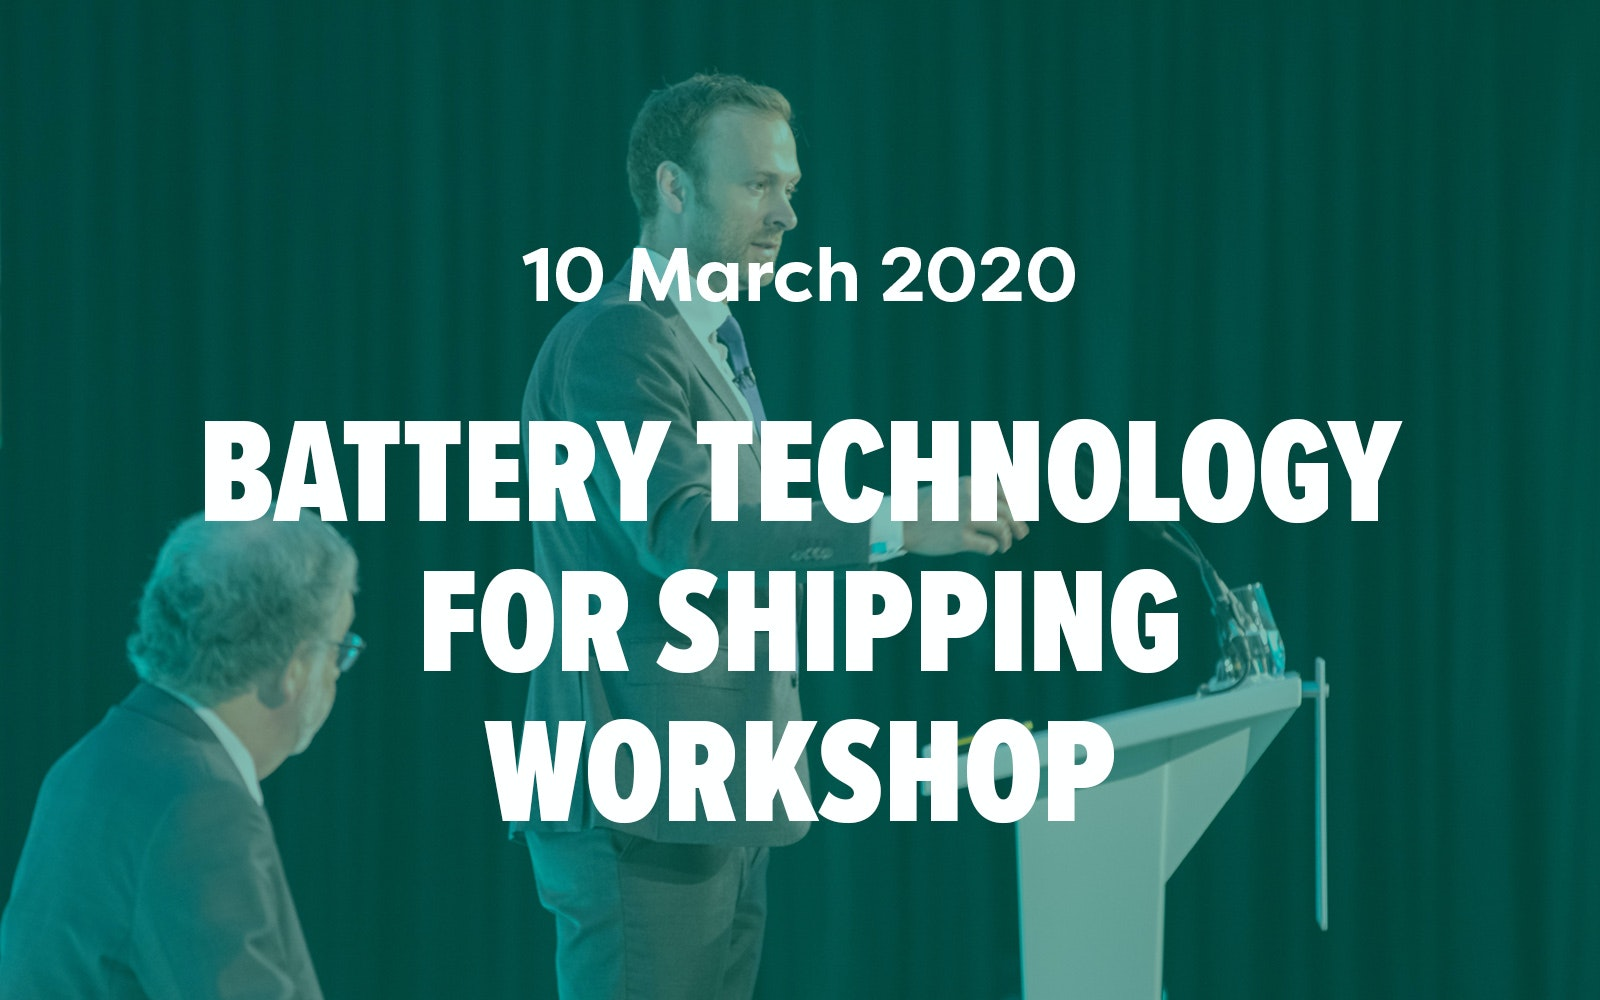 Battery Technology for Shipping Workshop